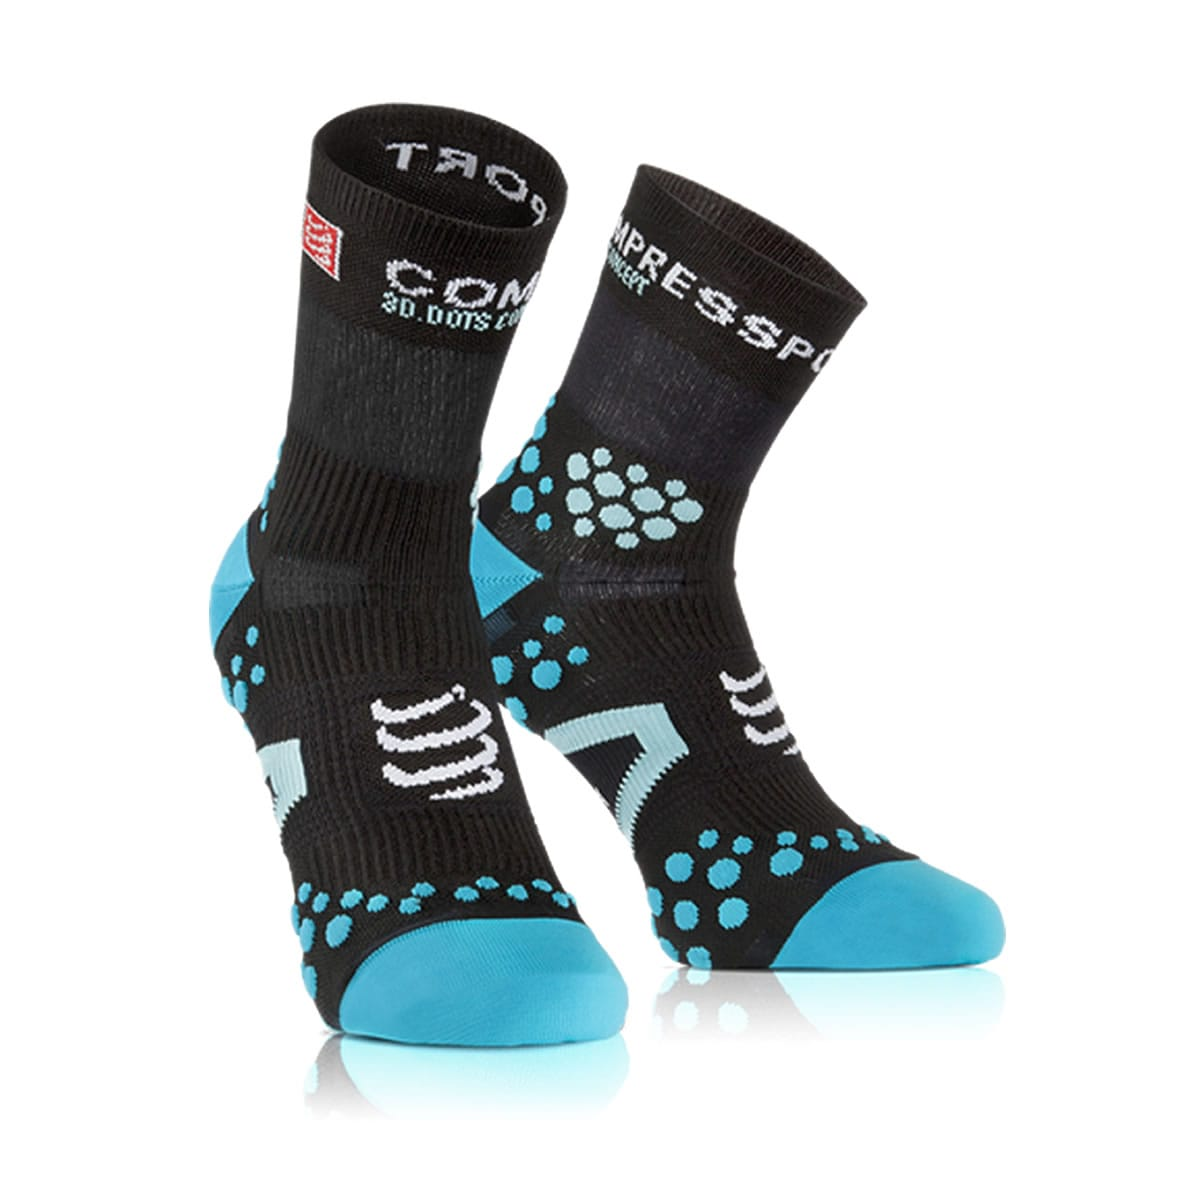 PRS V2.1 Run high unisex - Compressport - 024004066069